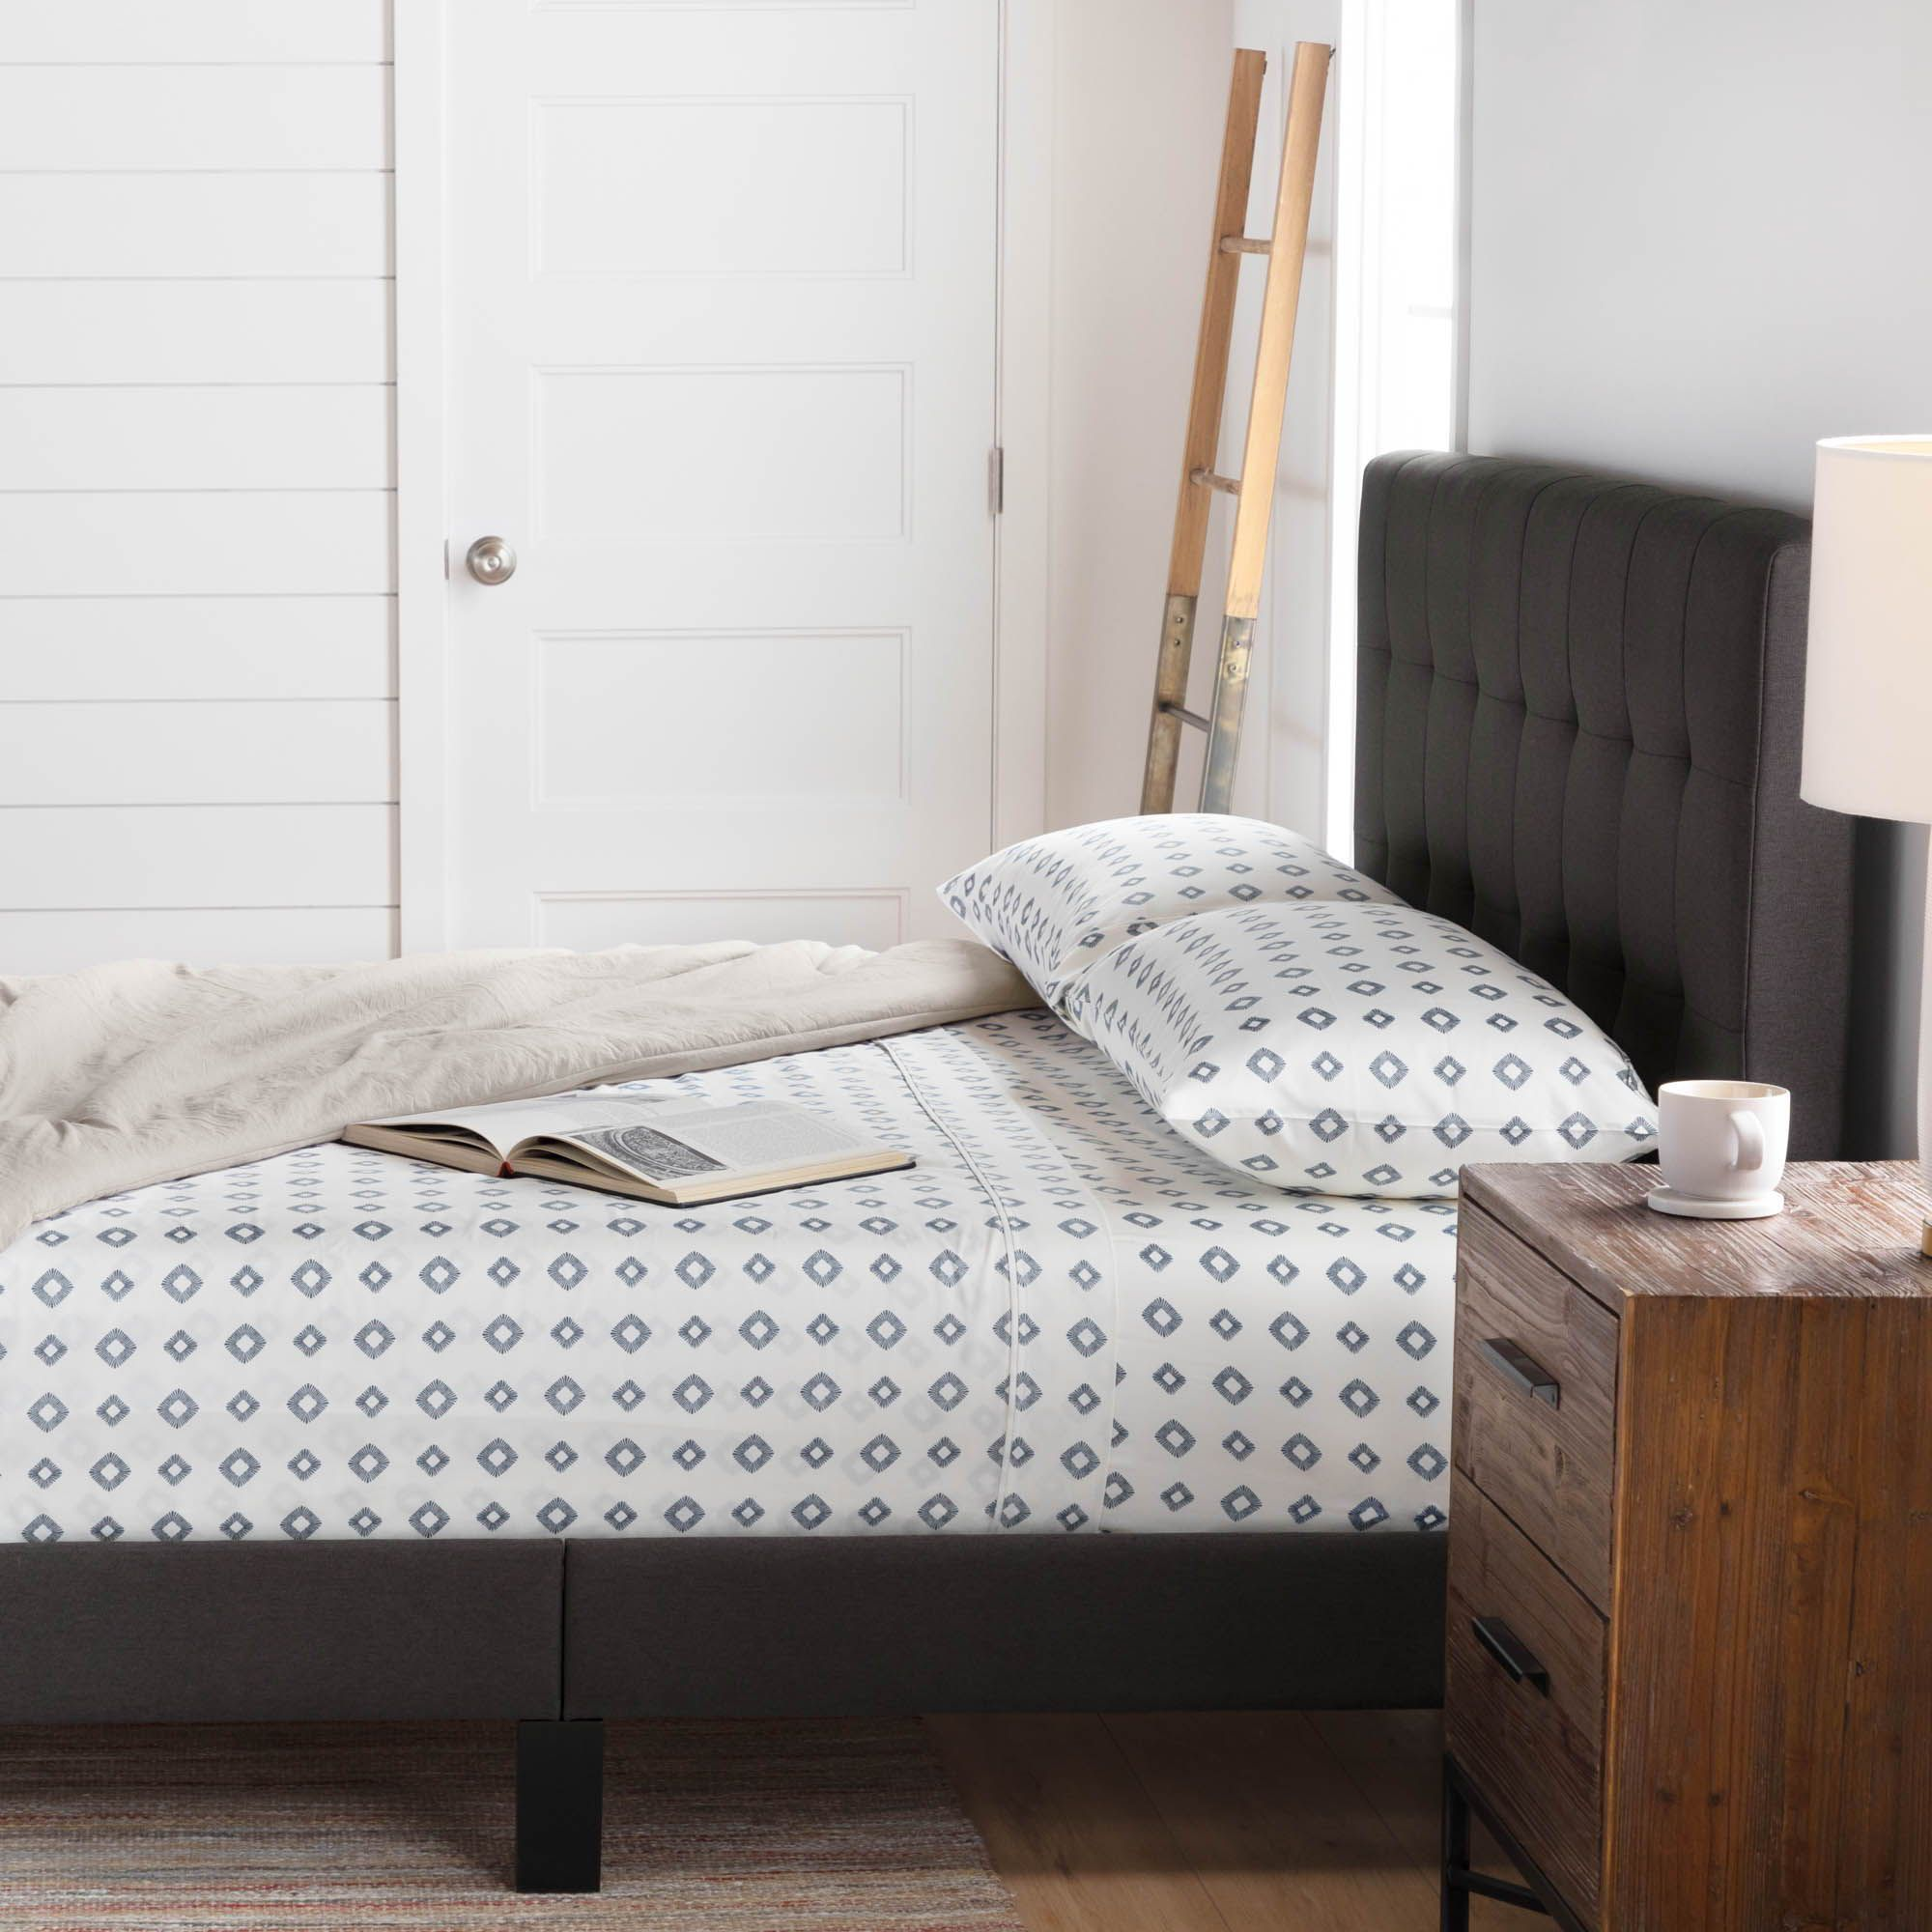 Brookside Cara Charcoal Upholstered Platform Bed With Headboard A Gorgeous Upholstered Fi With Images Queen